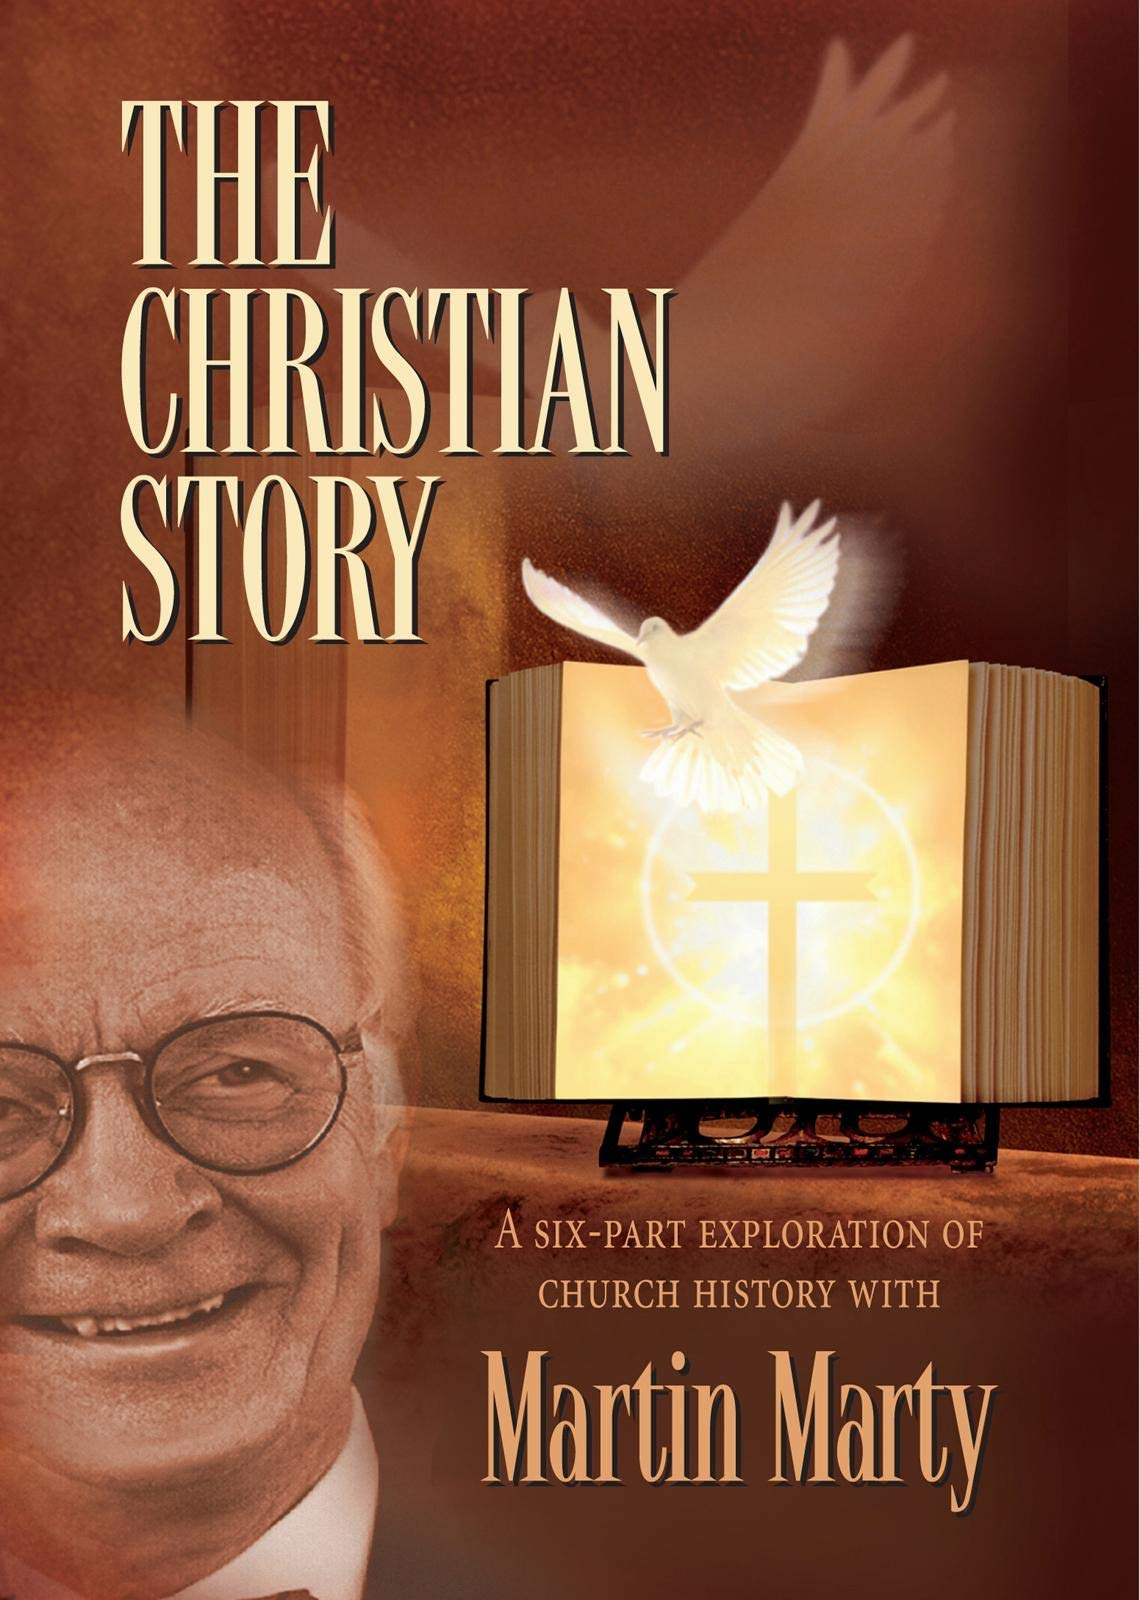 The Christian Story